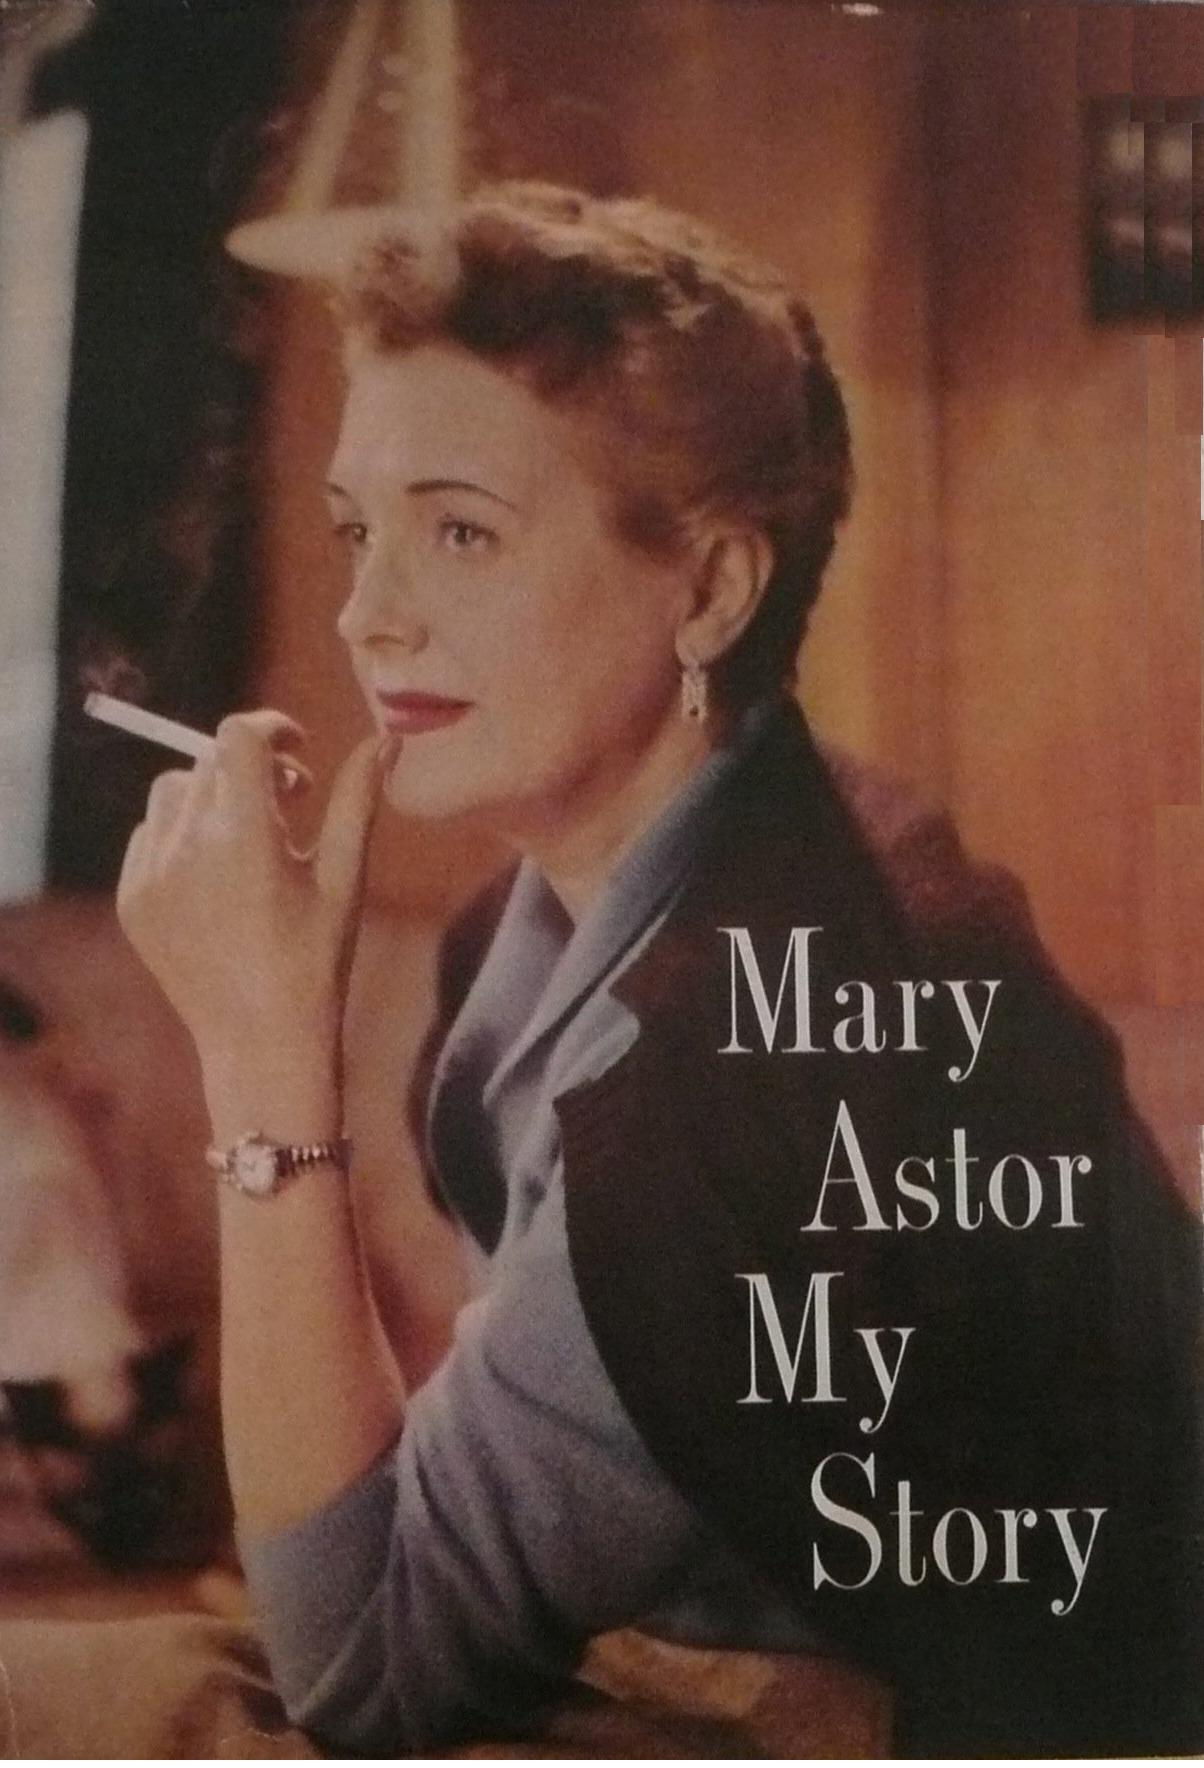 <p>Mary Astor, My Story, Hollwood</p>